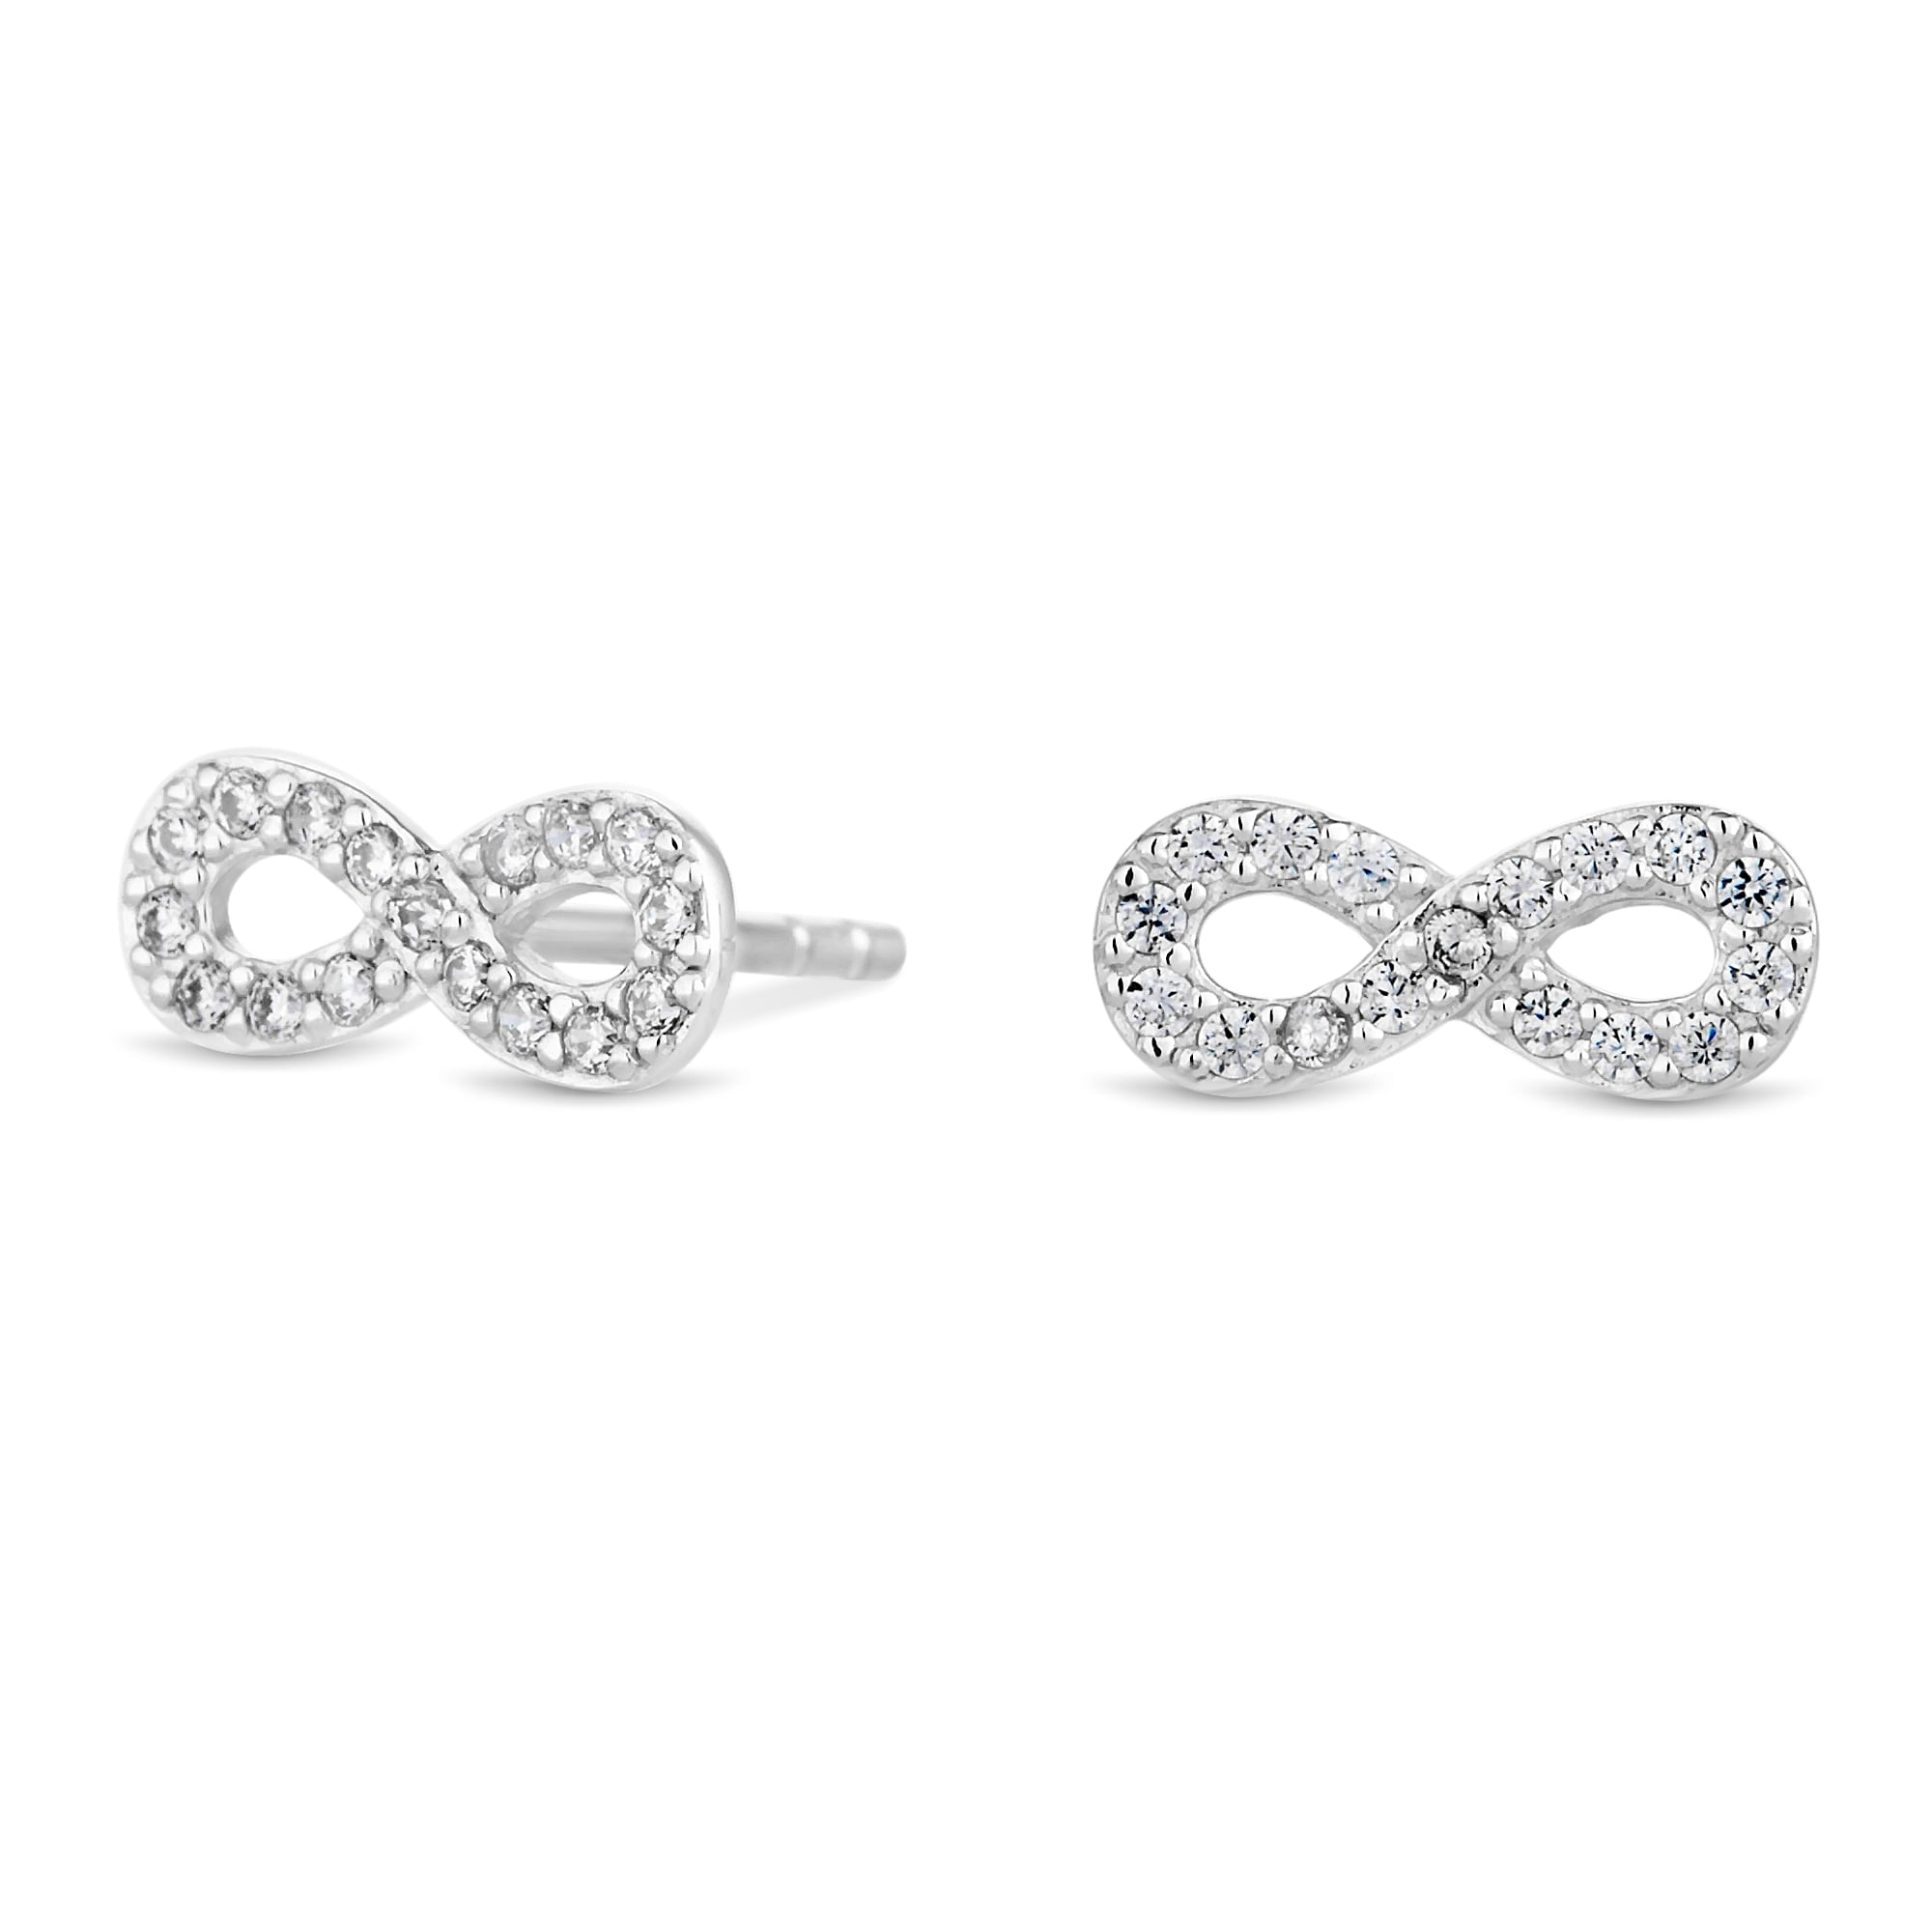 ie products earrings set crystal silver tipperary infinity stone stud